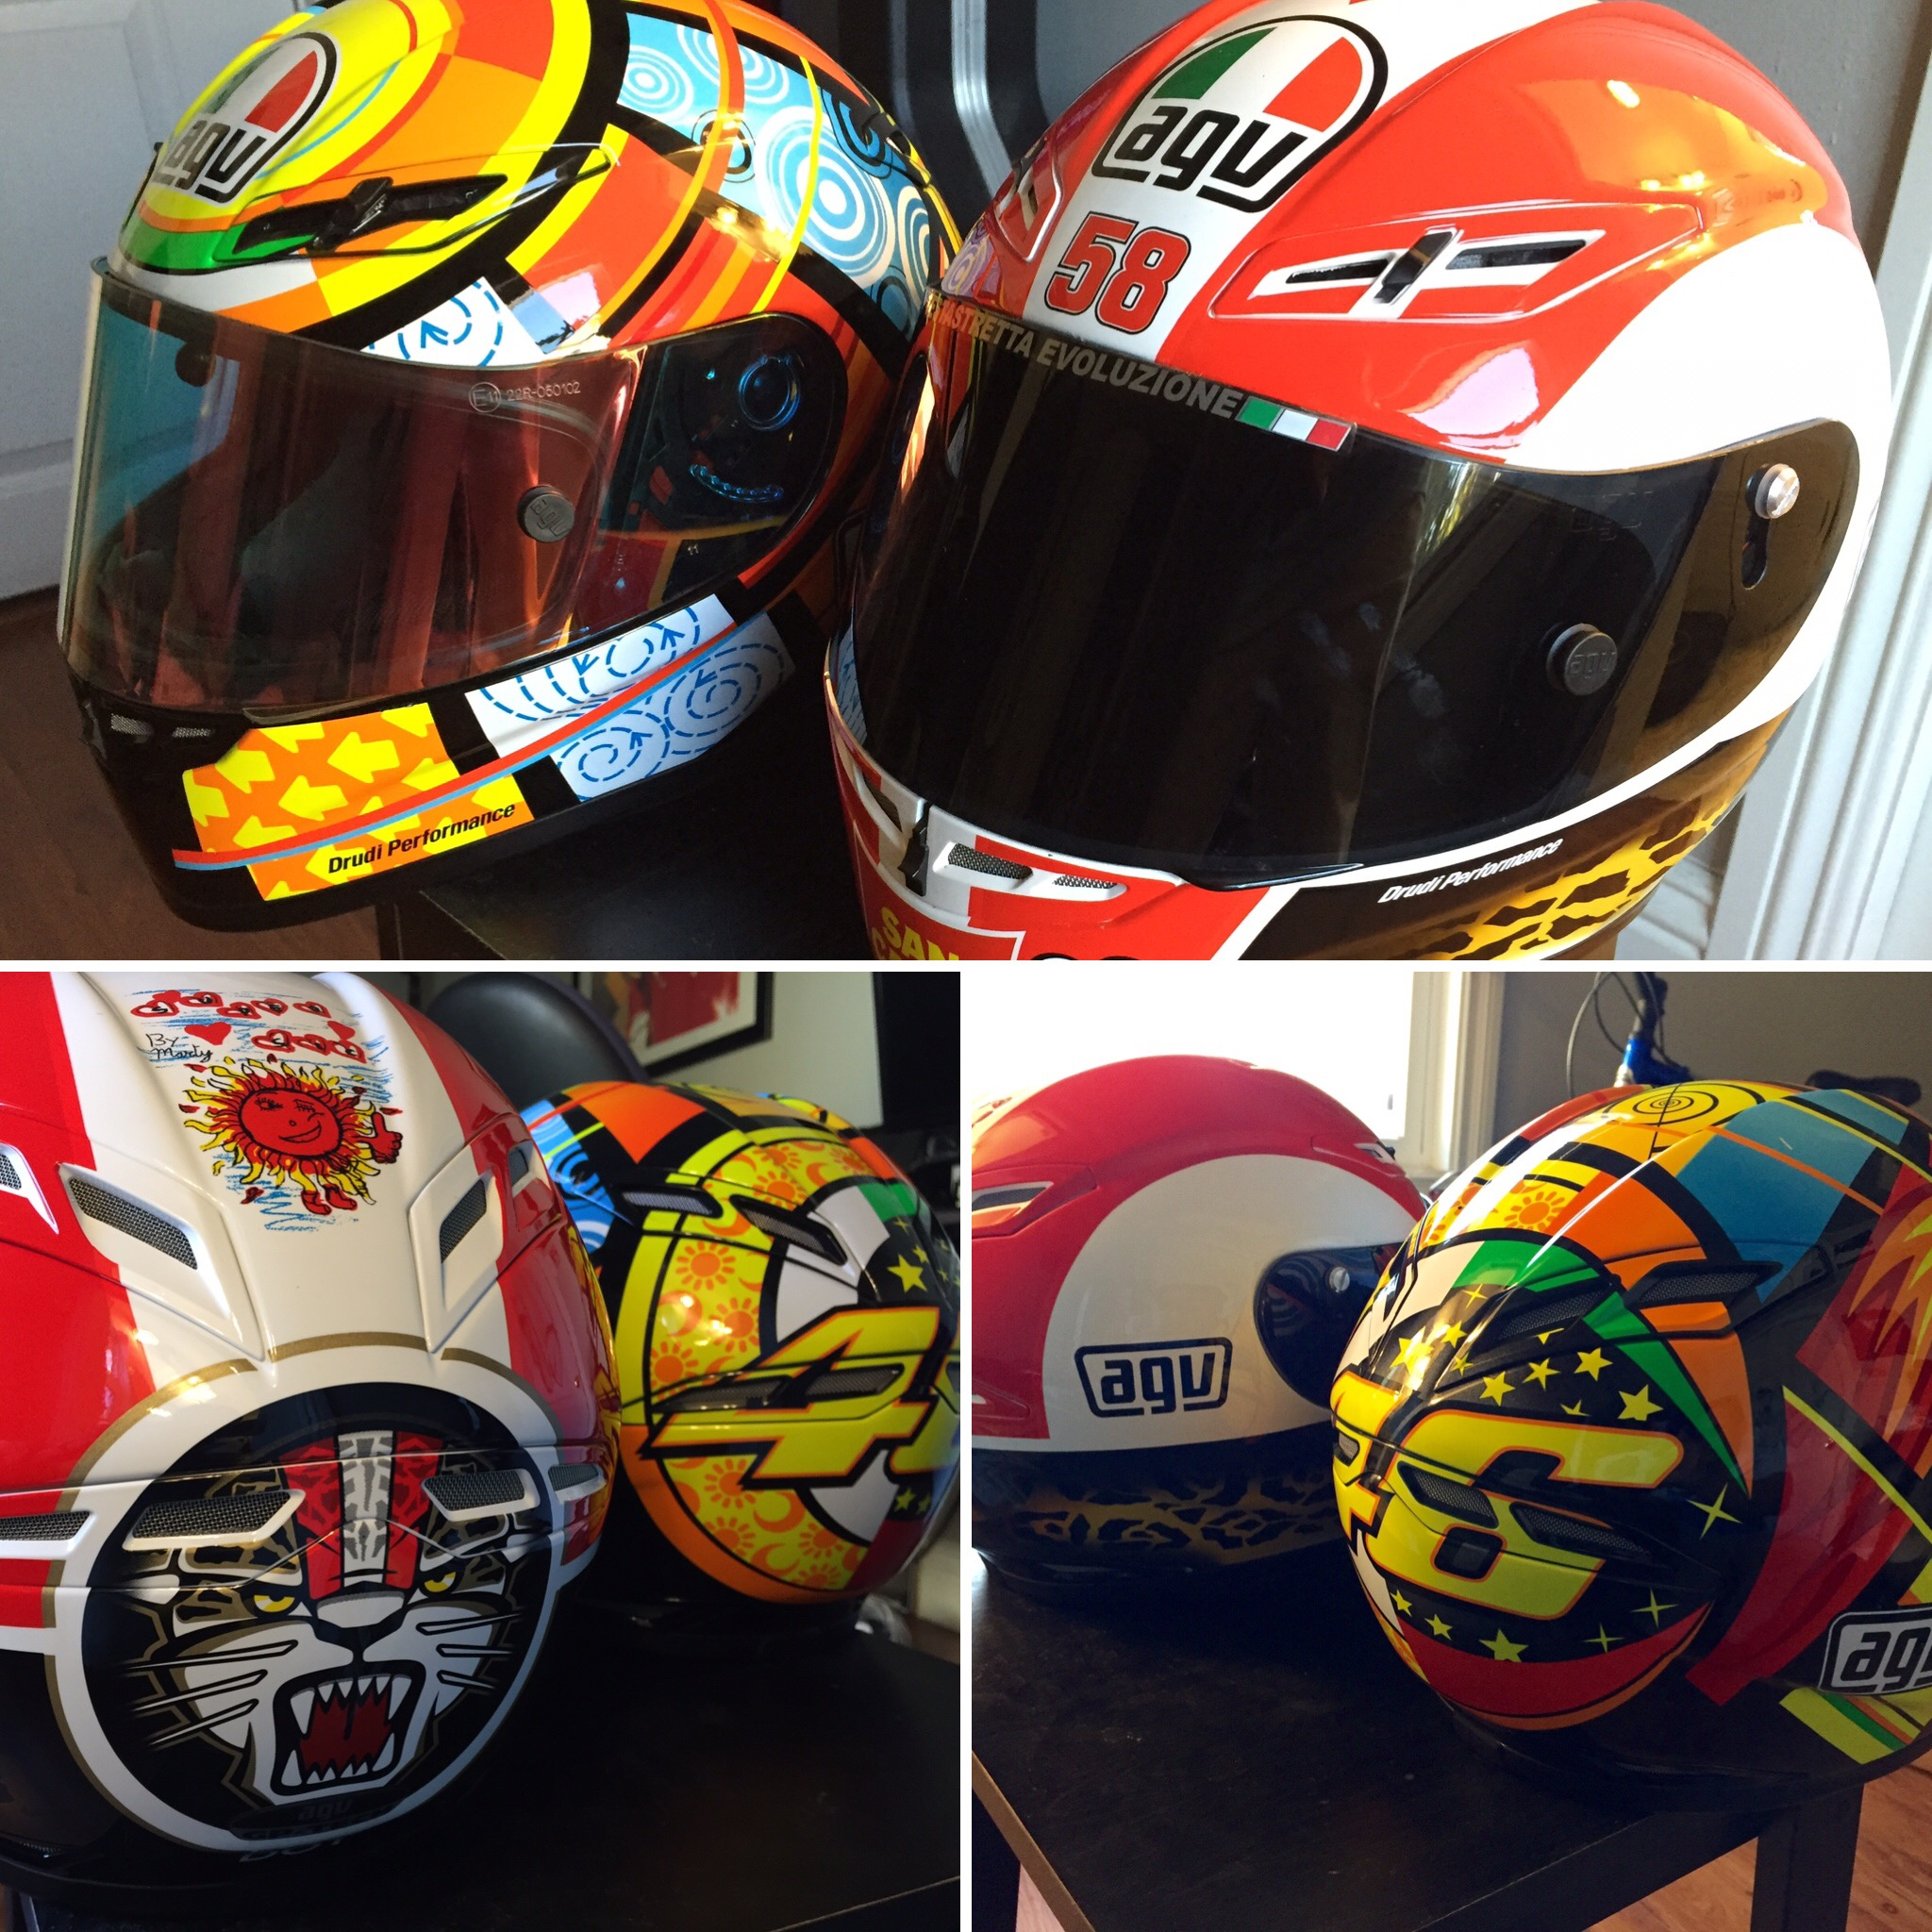 Agv Gp Tech Valentino Rossi Elements Tales From The Pilot Seat Of A Ducati Sportclassic